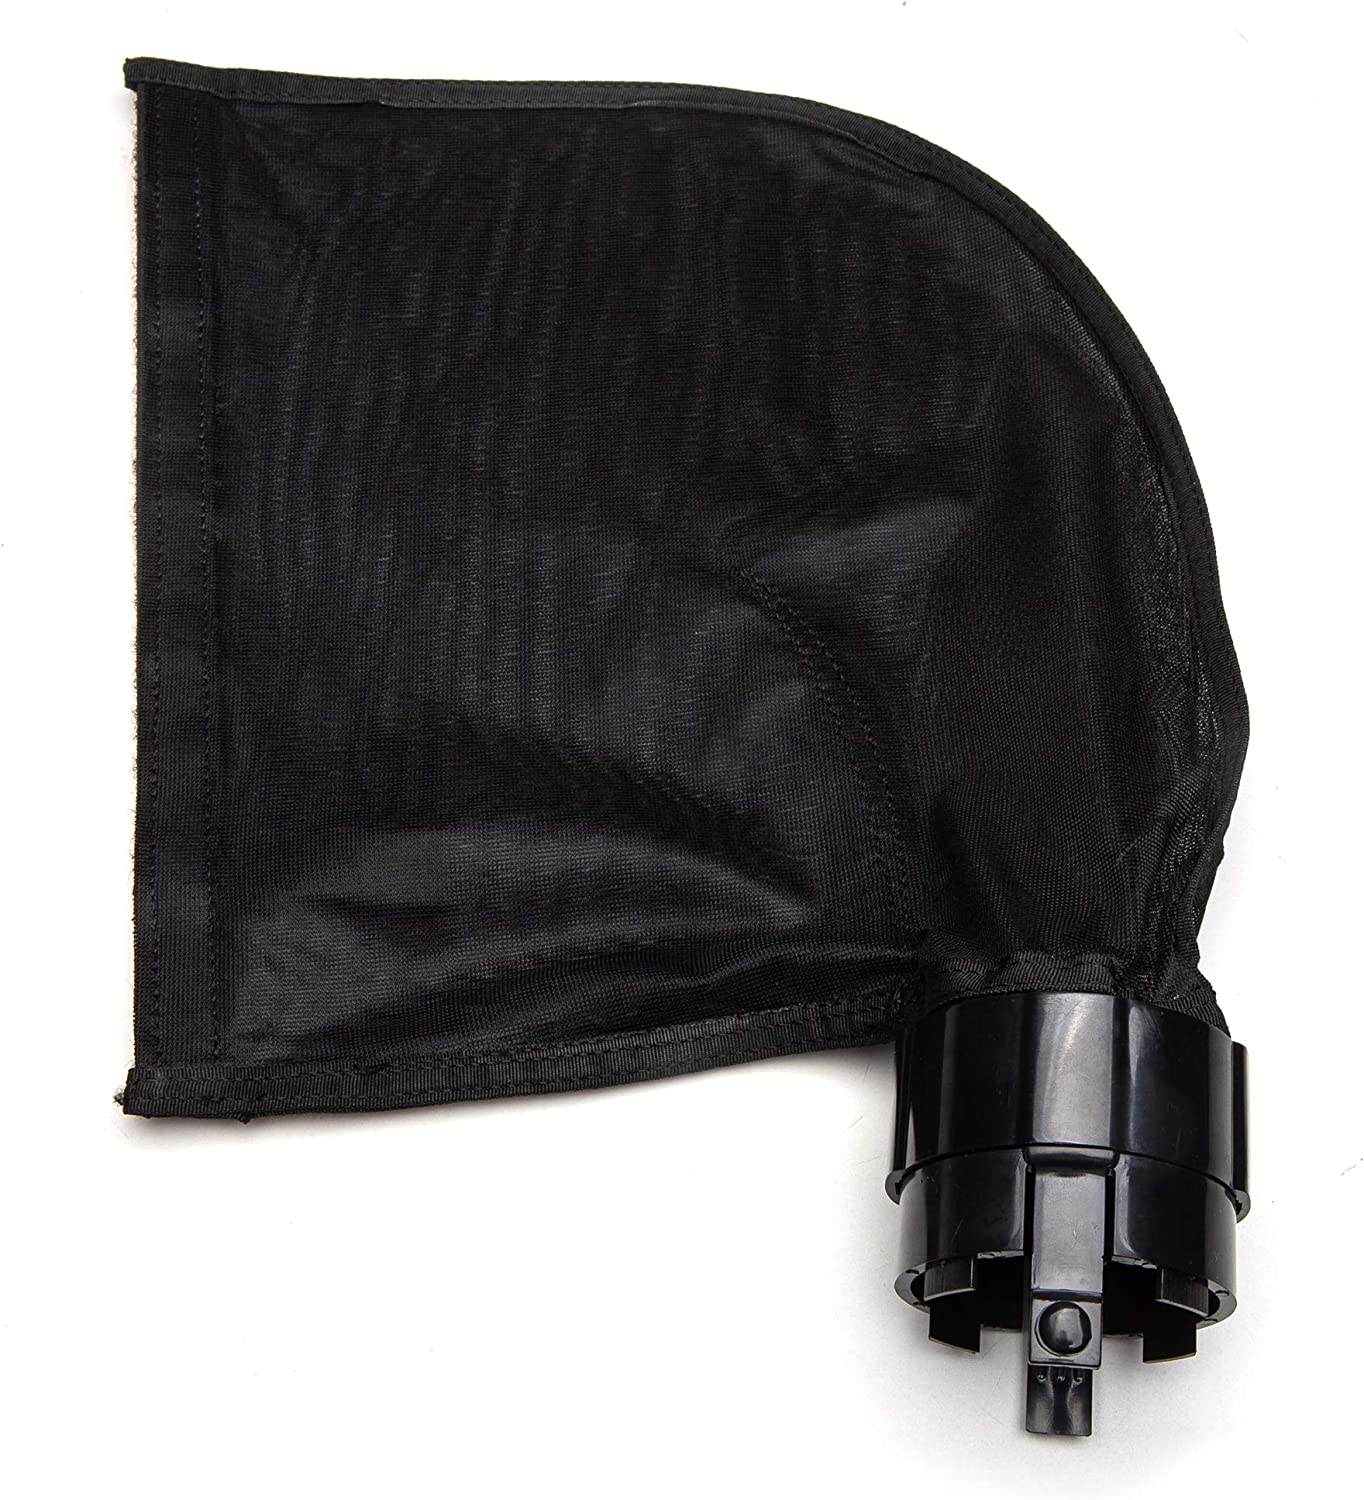 ATIE PoolSupplyTown Black All Purpose Bag Replacement Fits for Polaris 360 380 Black Max Pool Cleaner All Purpose Bag 9-100-1016